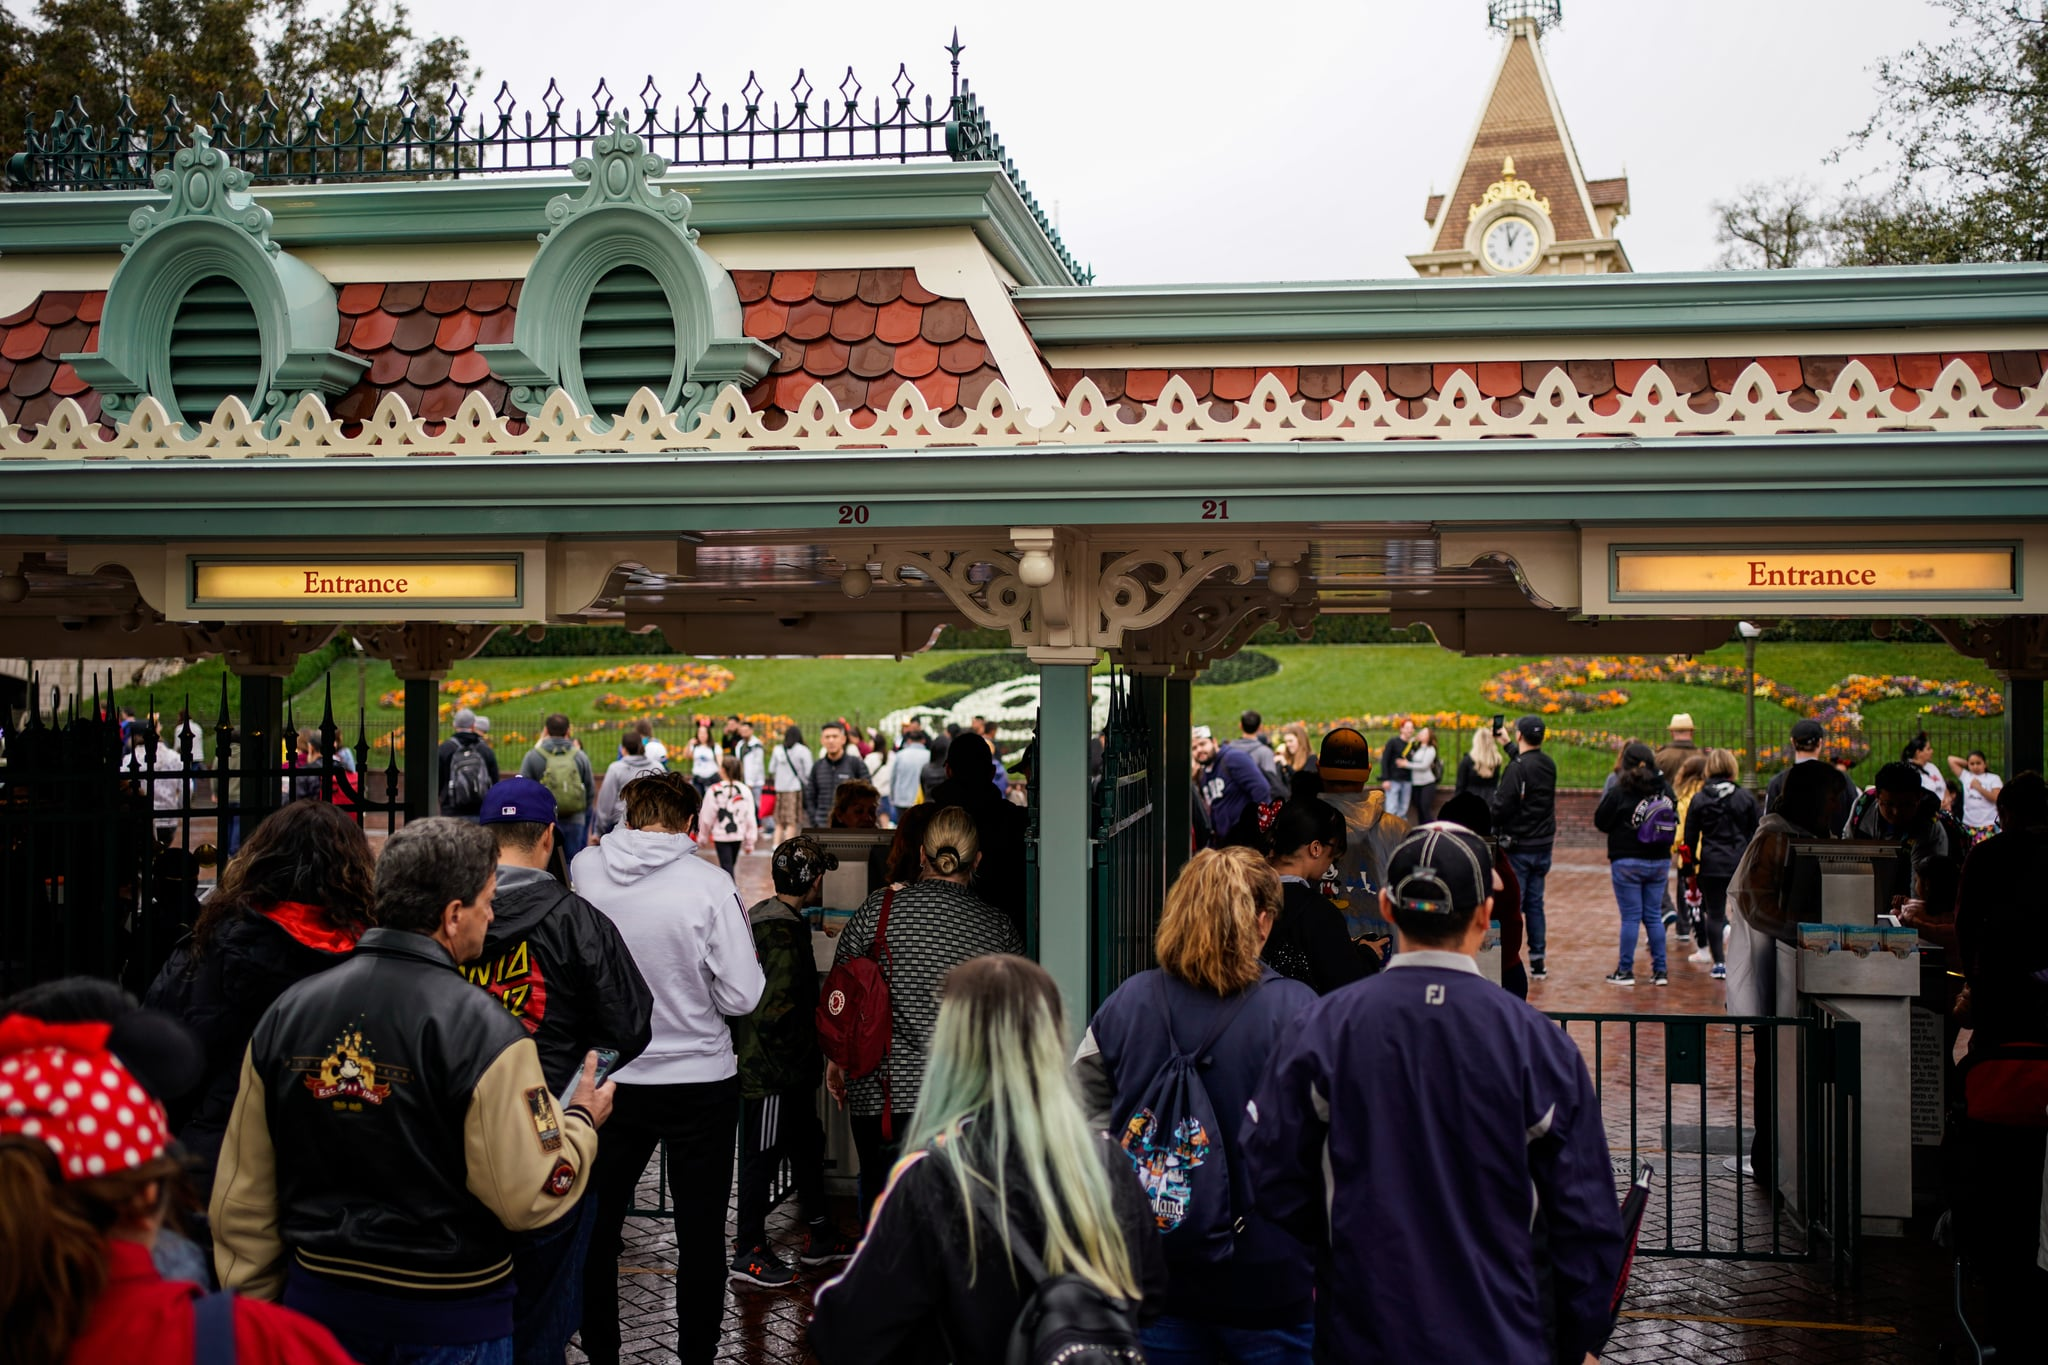 ANAHEIM, CA - MARCH 13: People wait in line to enter Disneyland on March 13, 2020 in Anaheim, California. Disney's two Southern California Theme Parks, California Adventure and Disneyland are shutting down temporarily until the end of March as a result of the spread of the Coronavirus. (Photo by Kent Nishimura/Los Angeles Times via Getty Images)